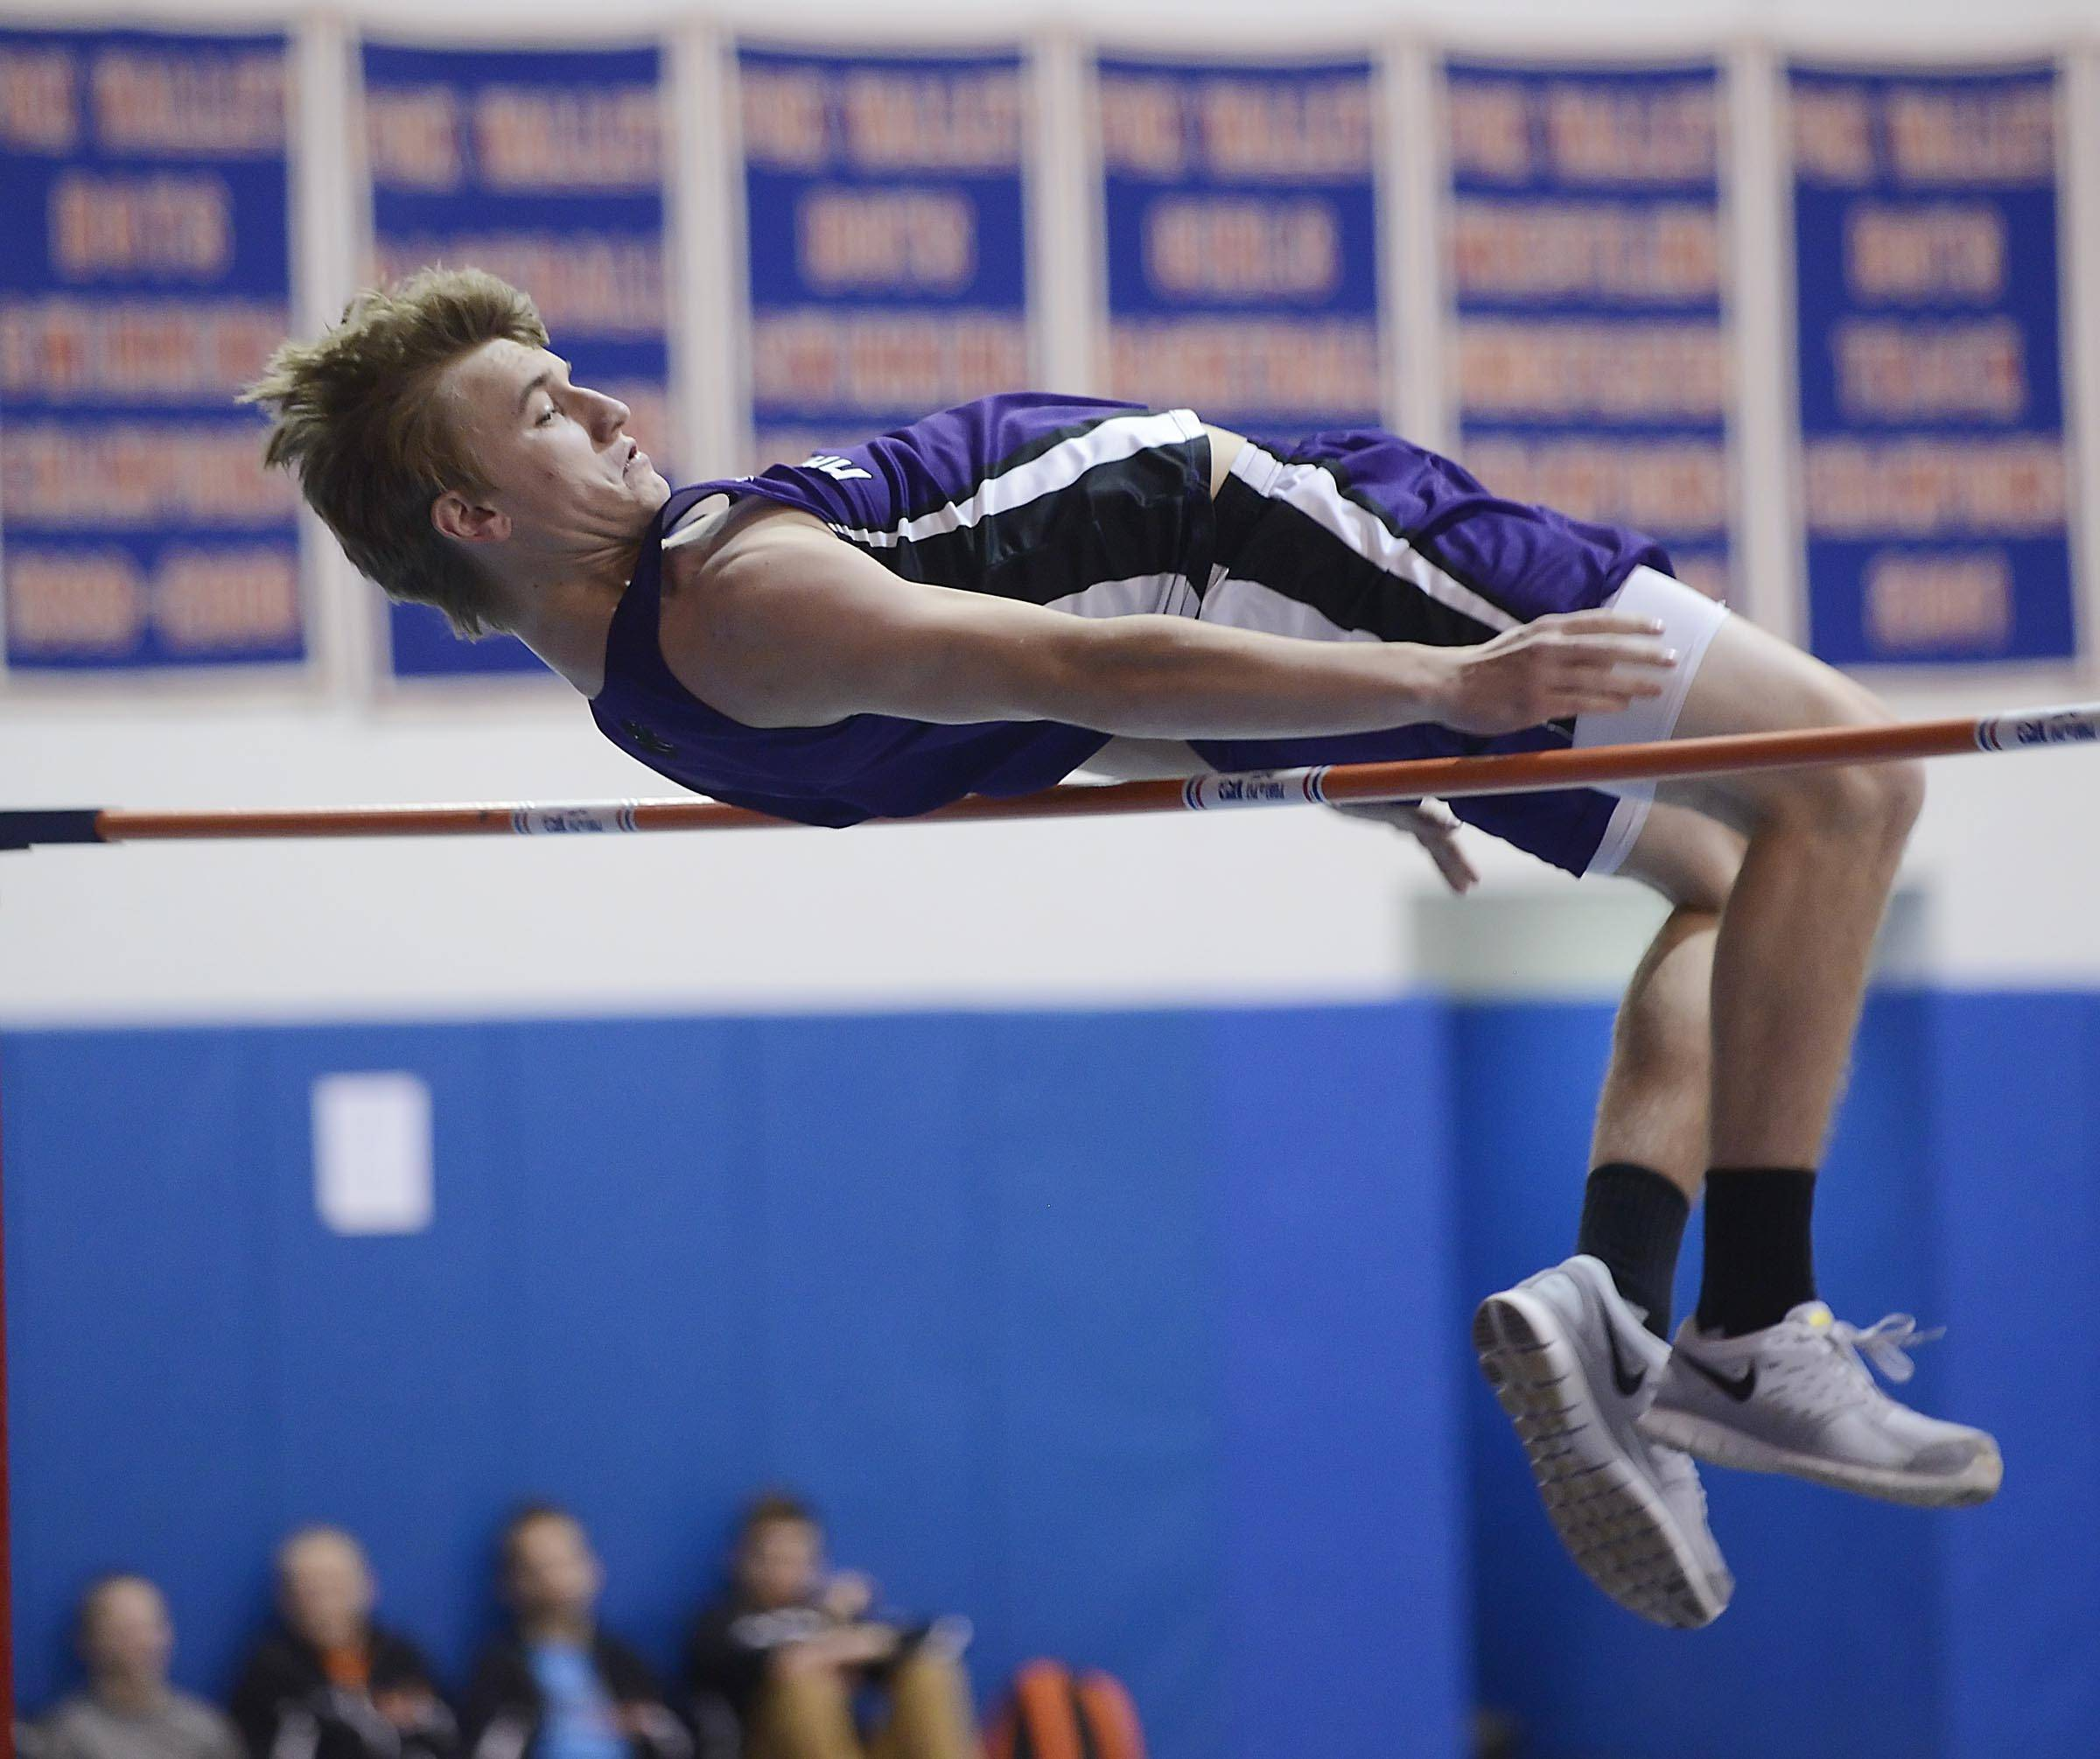 Hampshire's Brandon Bowen competes in the high jump Wednesday at the Fox Valley Conference boys indoor track meet at Dundee-Crown High School in Carpentersville.